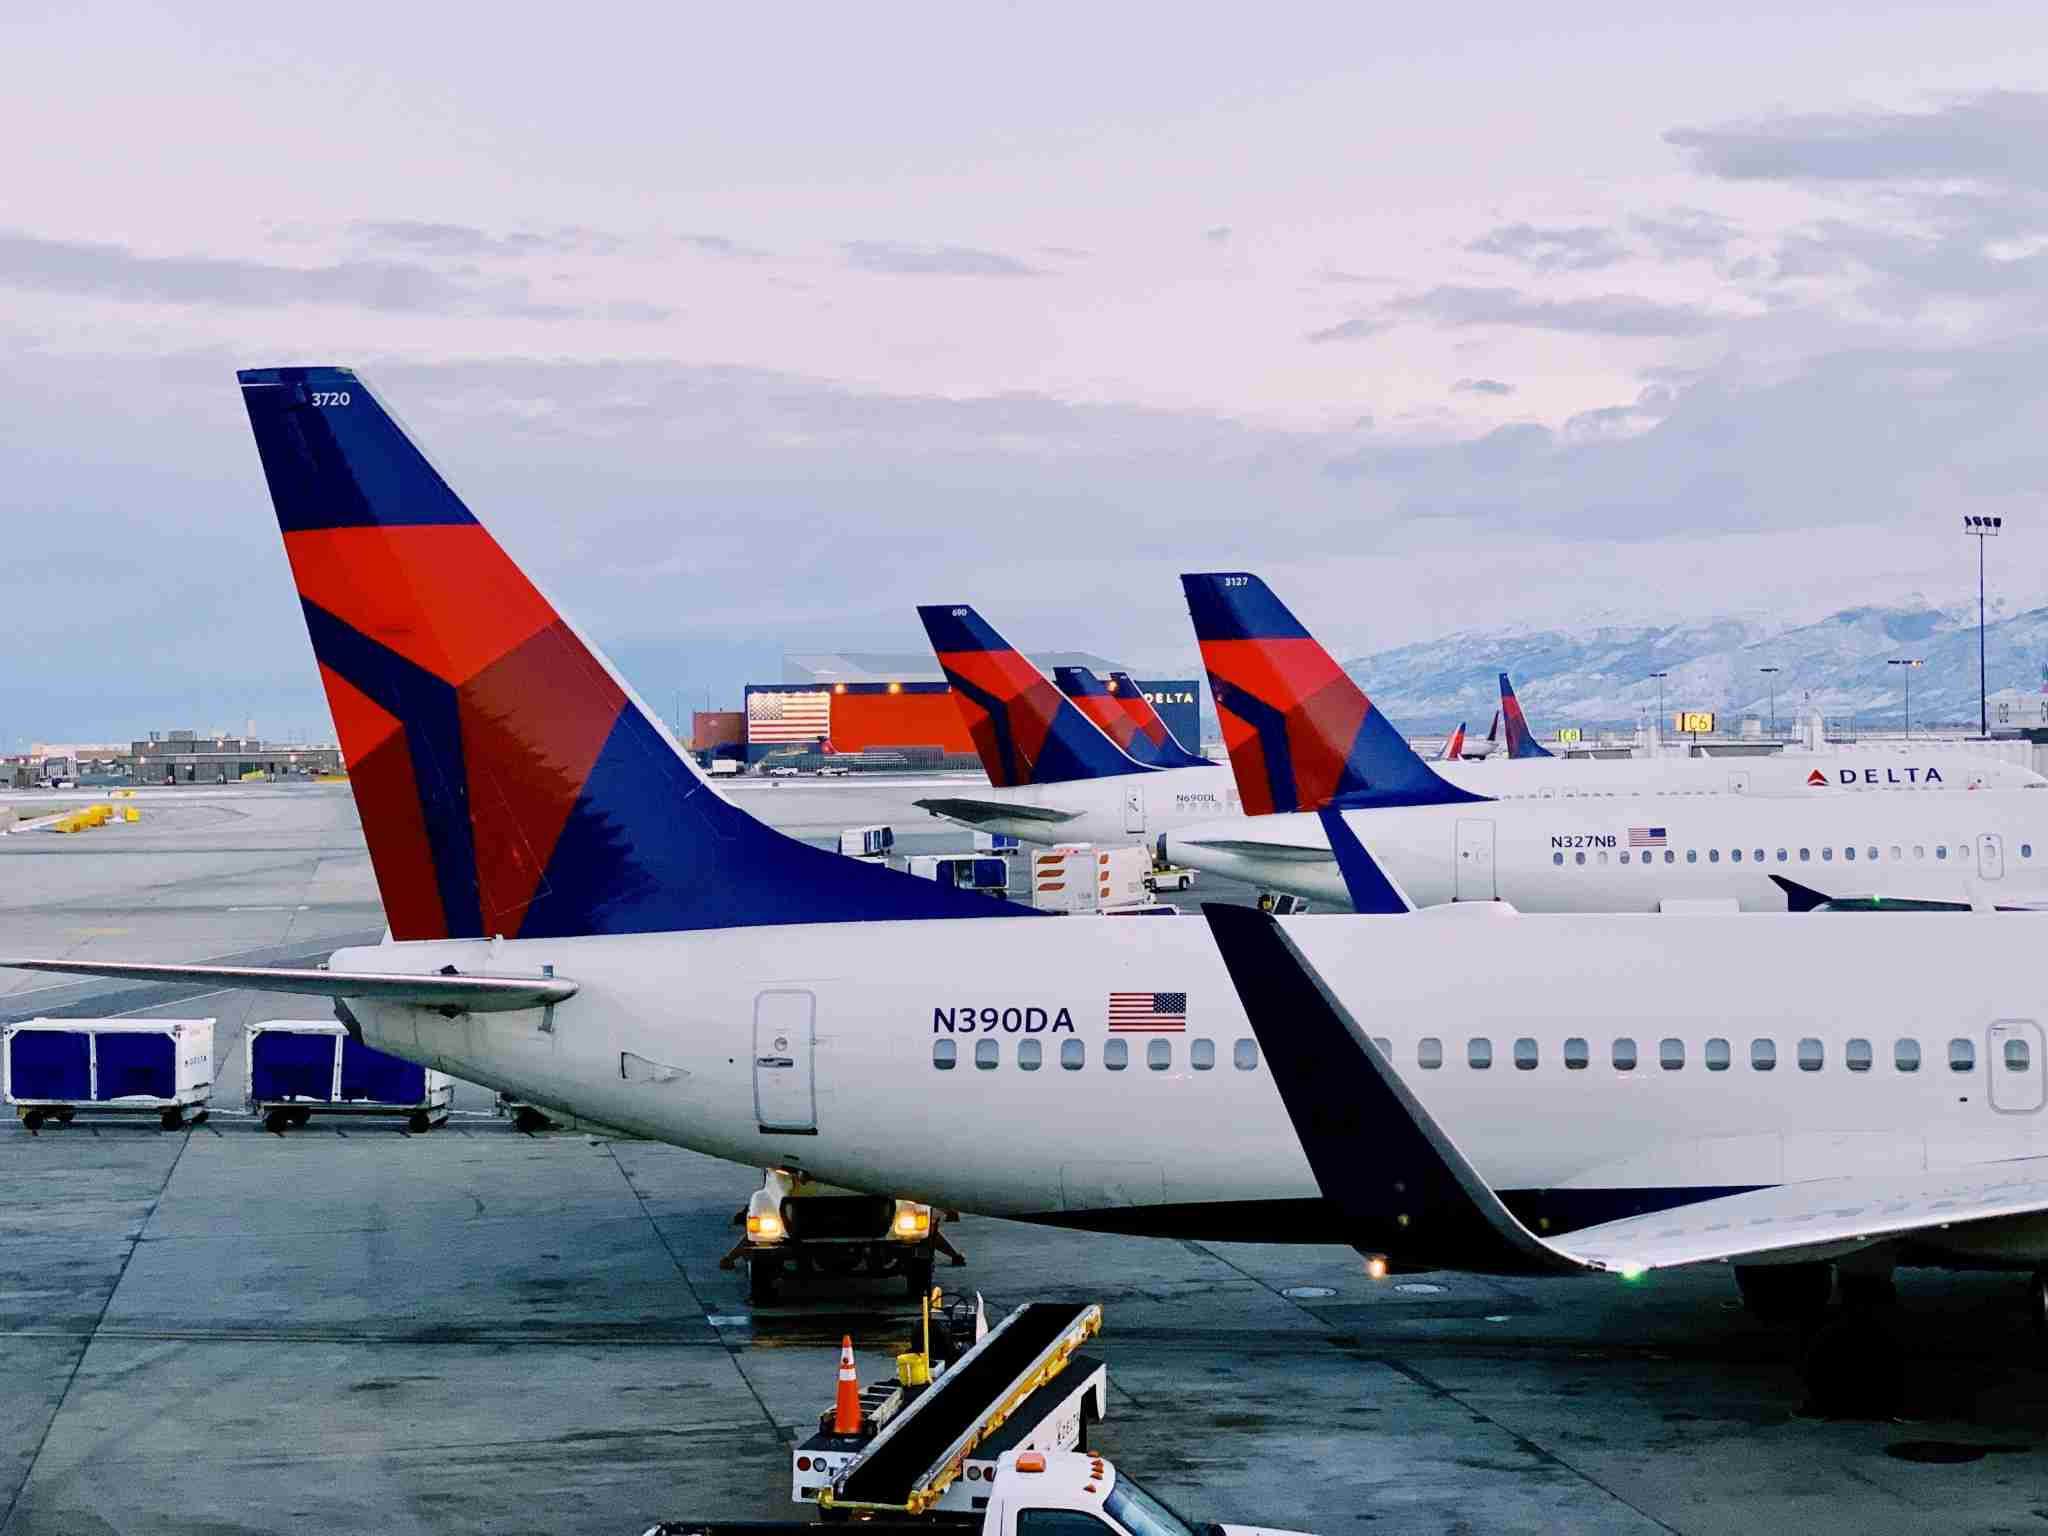 Delta Tail Planes Salt Lake City Airport SLC